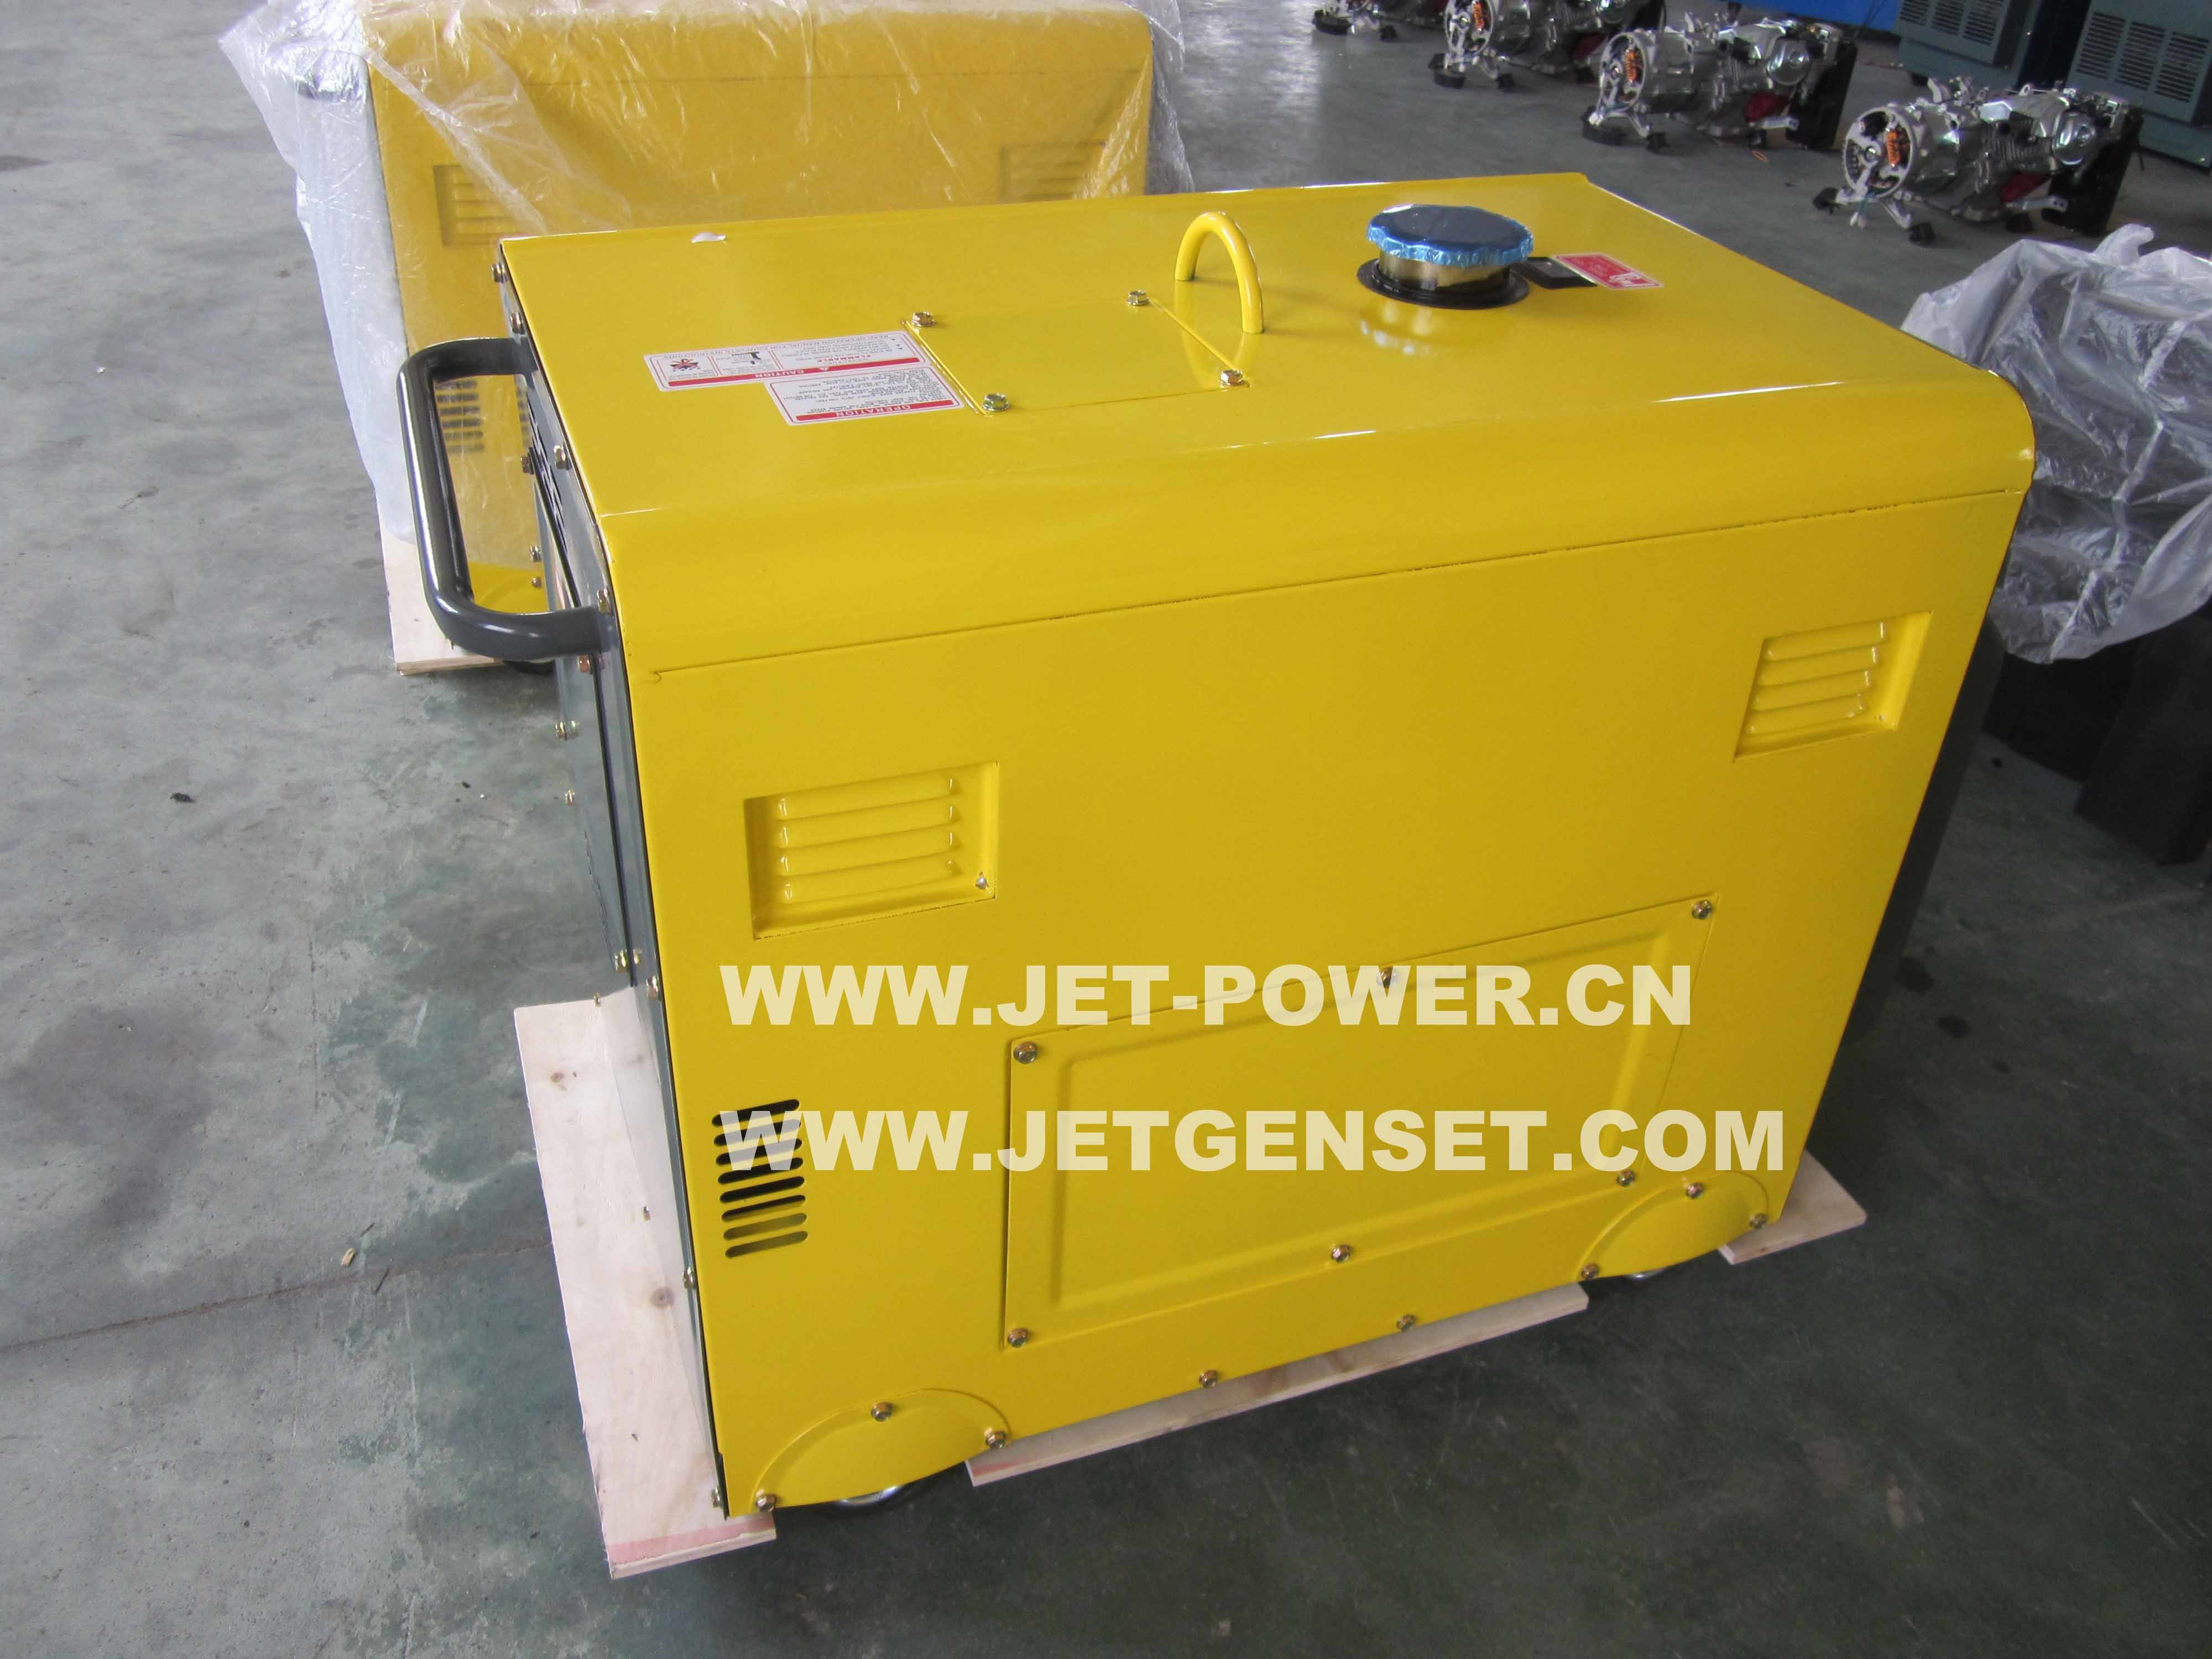 China Portable Silent Home Use Generator Diesel 3kVA with Price